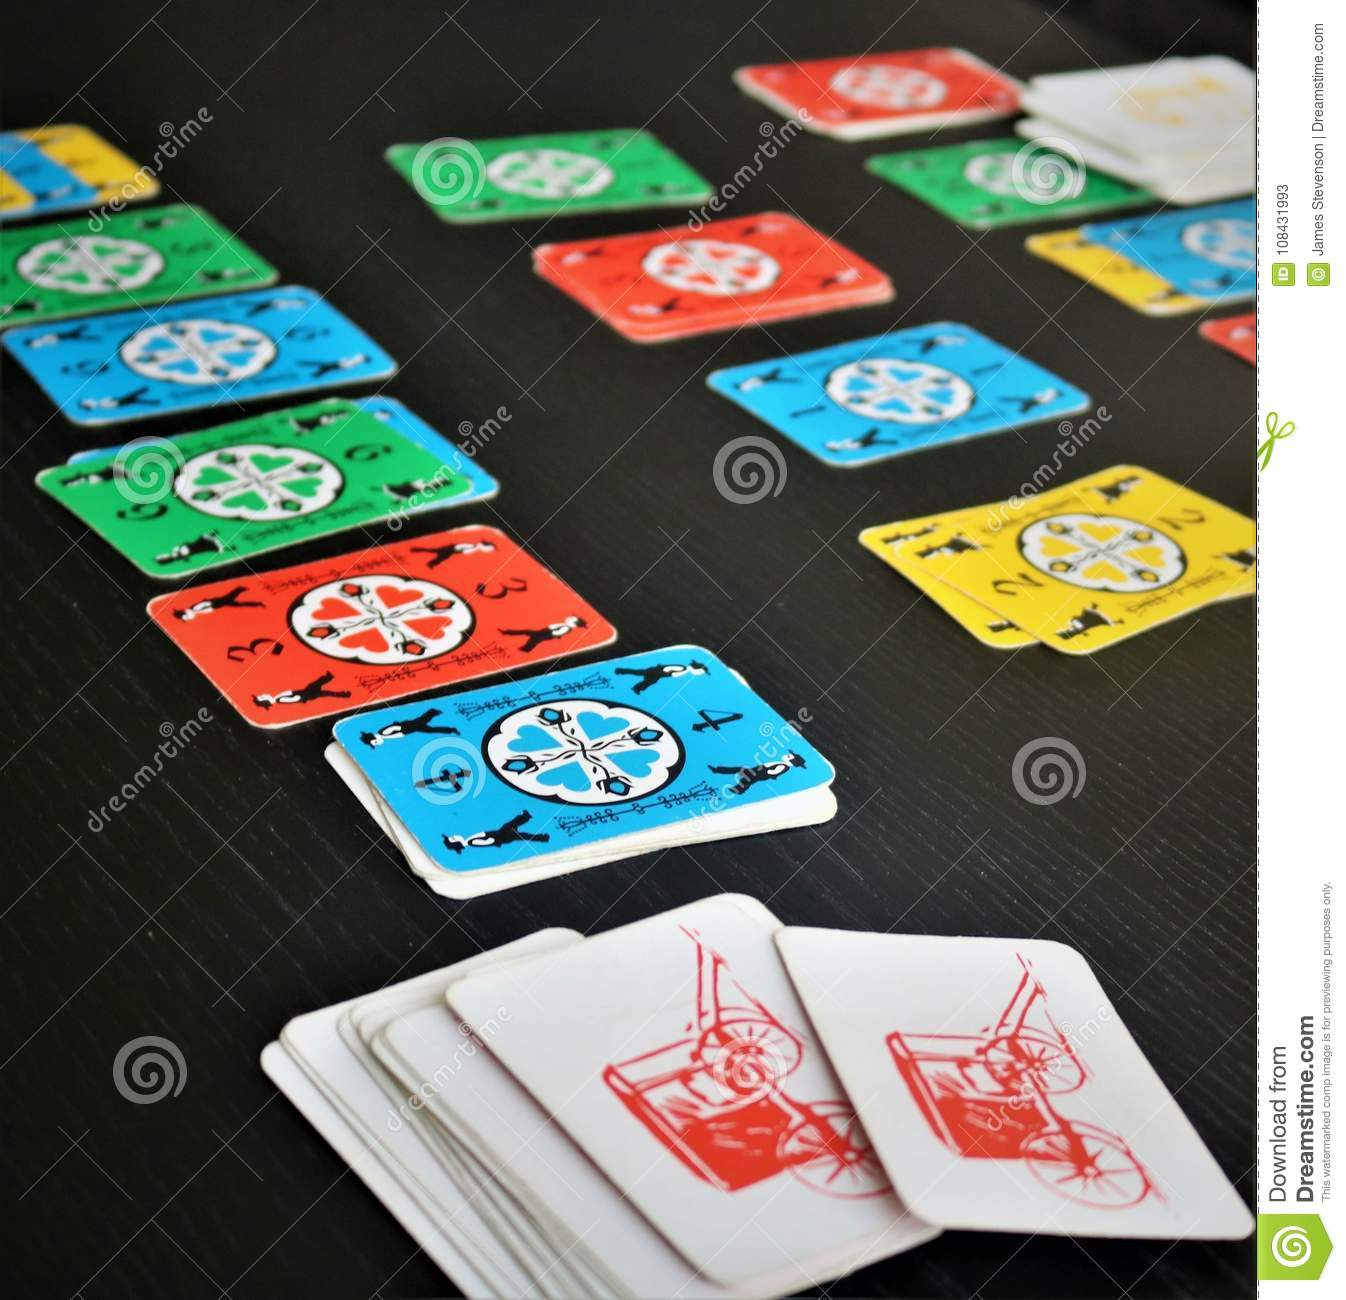 Dutch Blitz Is Good Card Game For Family Stock Image Image Of